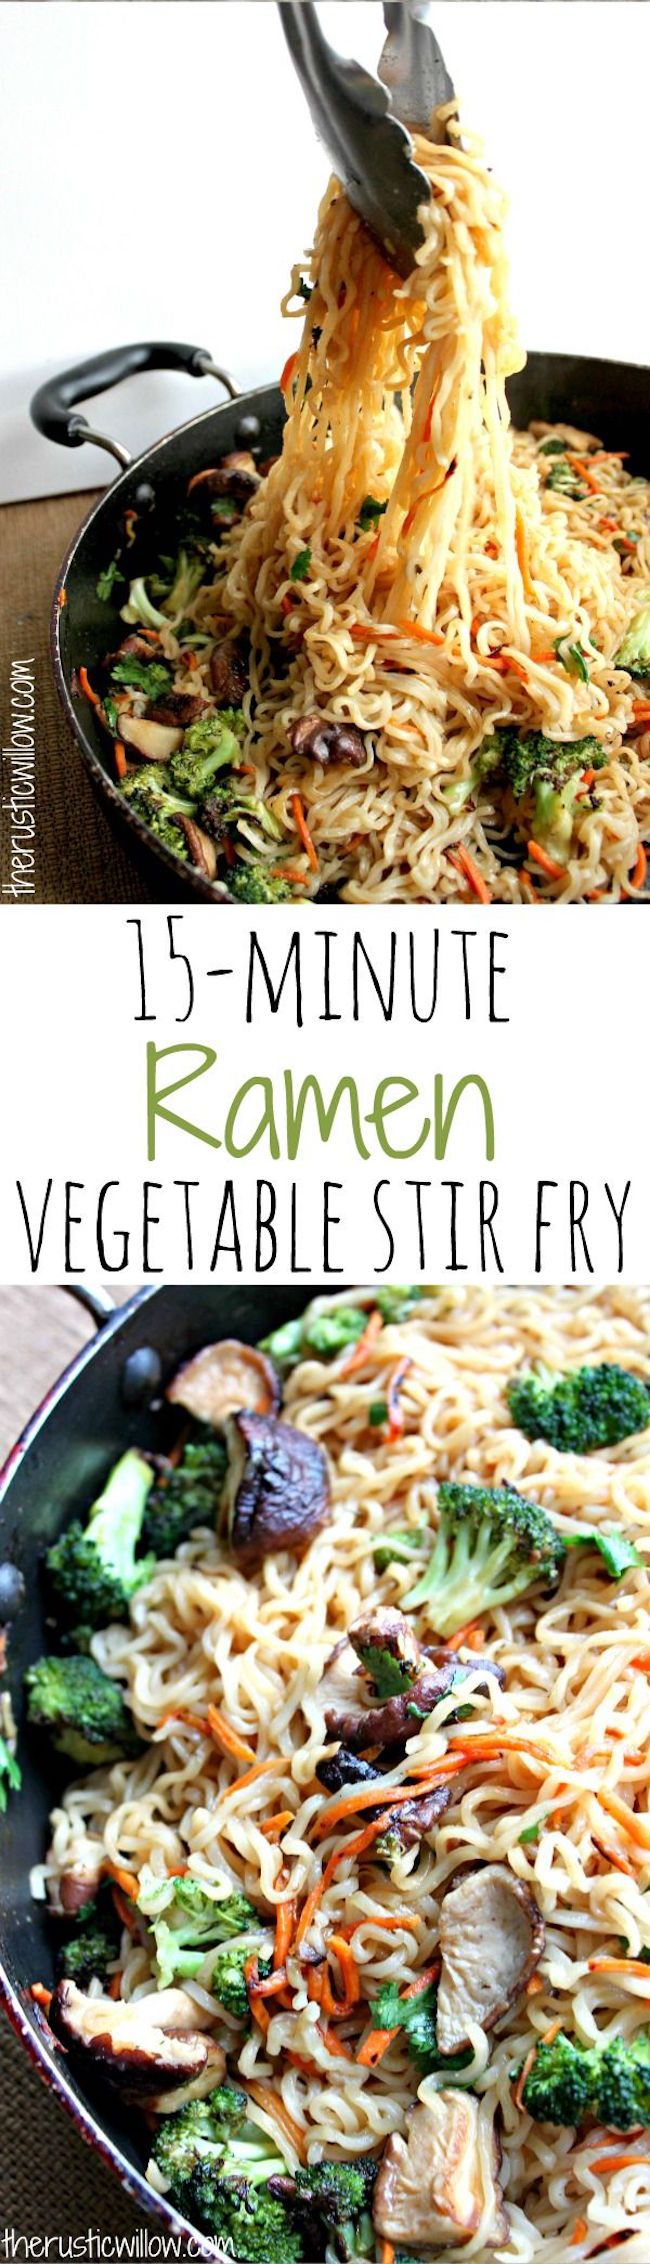 15 minute ramen vegetable stir fry (10 and other great stir fry recipes!)